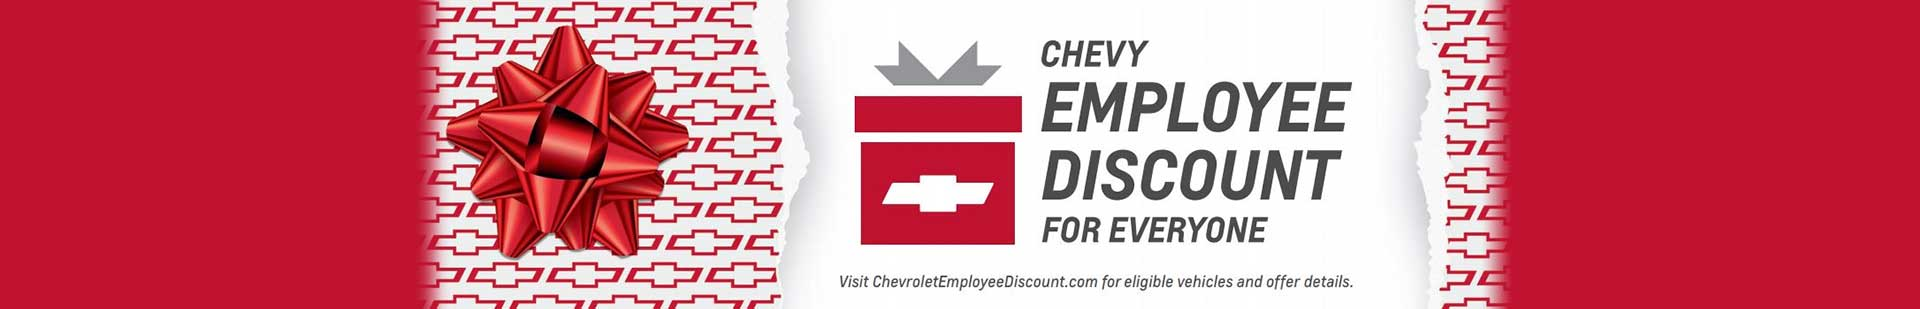 Chevy-Employee-Discount-1920x309.jpg